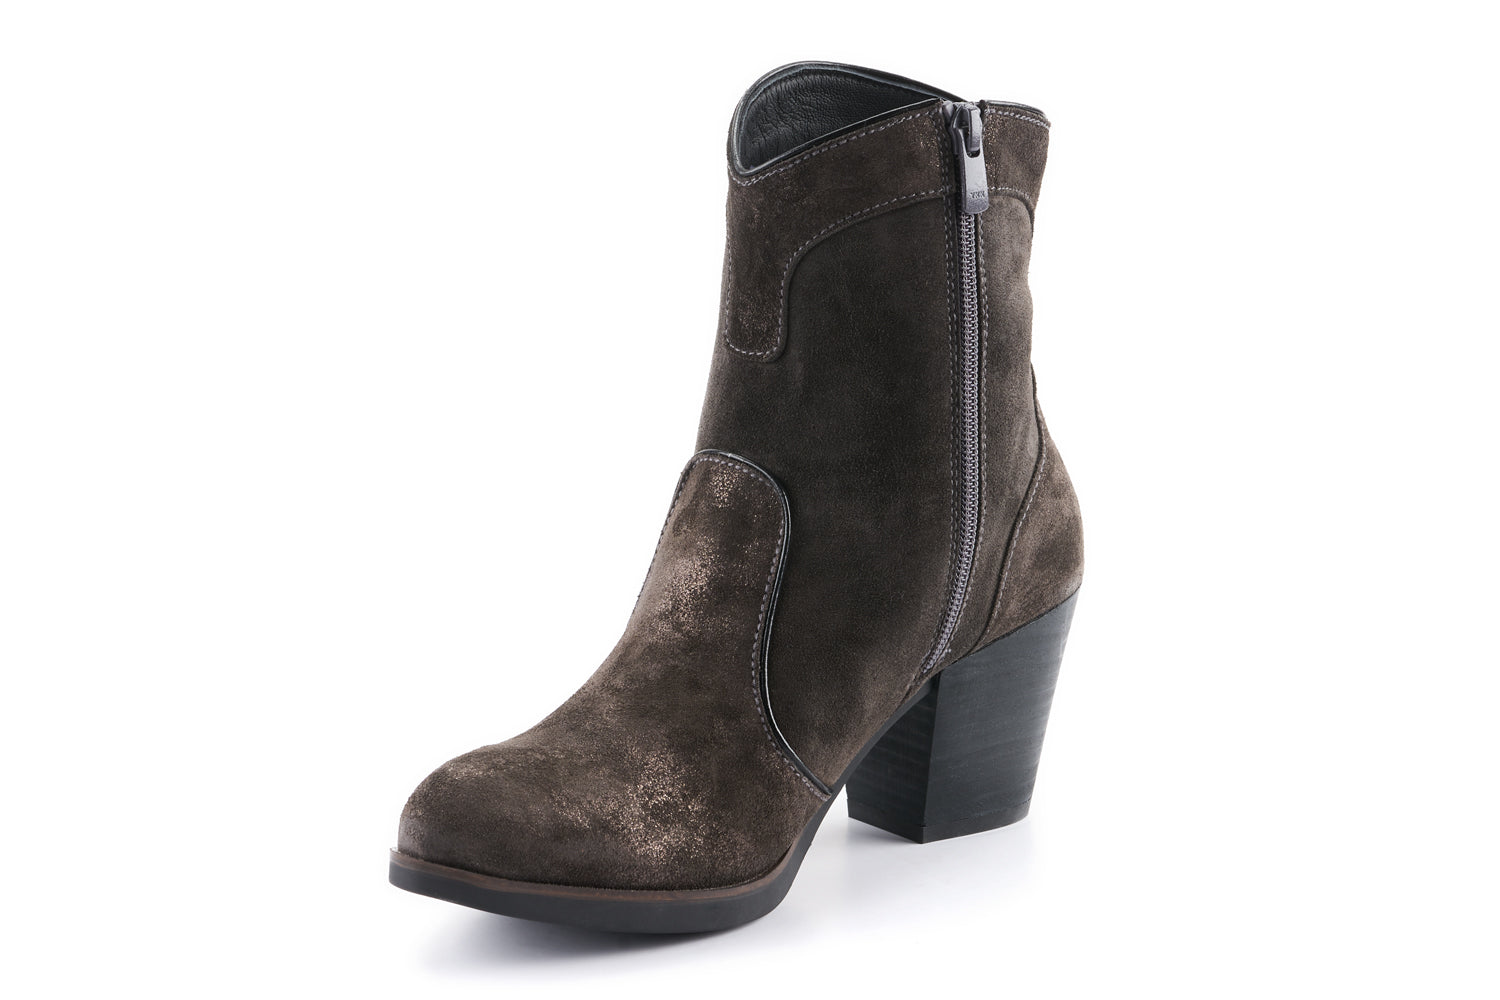 Darcie Leather Cowboy Boot - Charcoal Grey